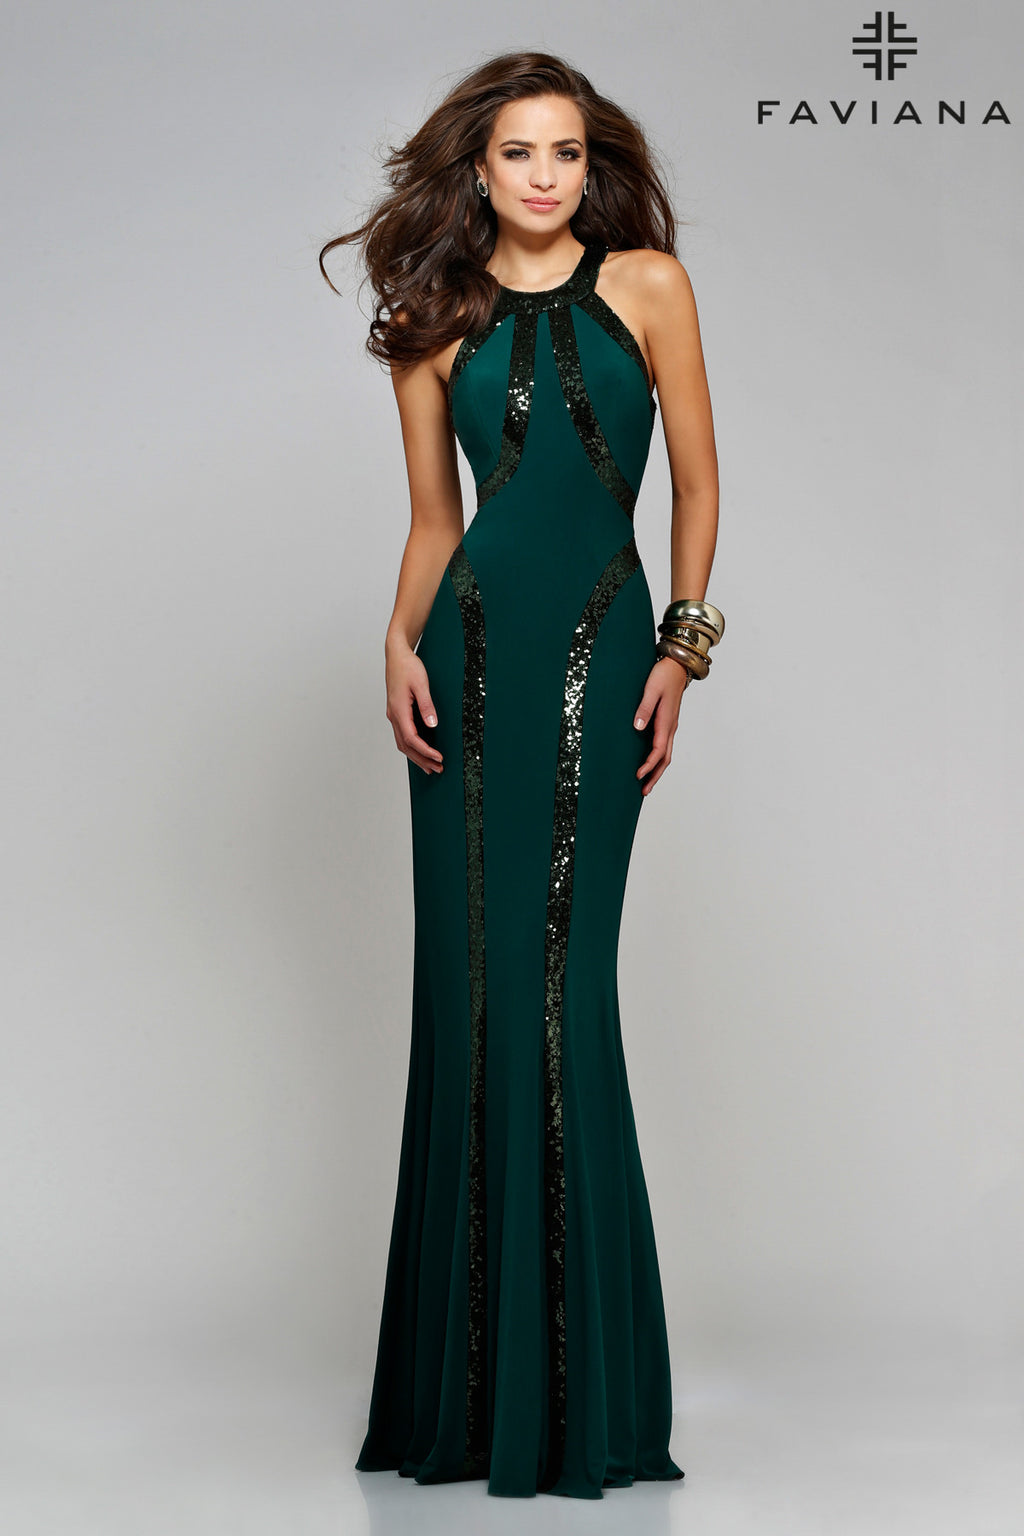 Faviana 7510 Prom Dress